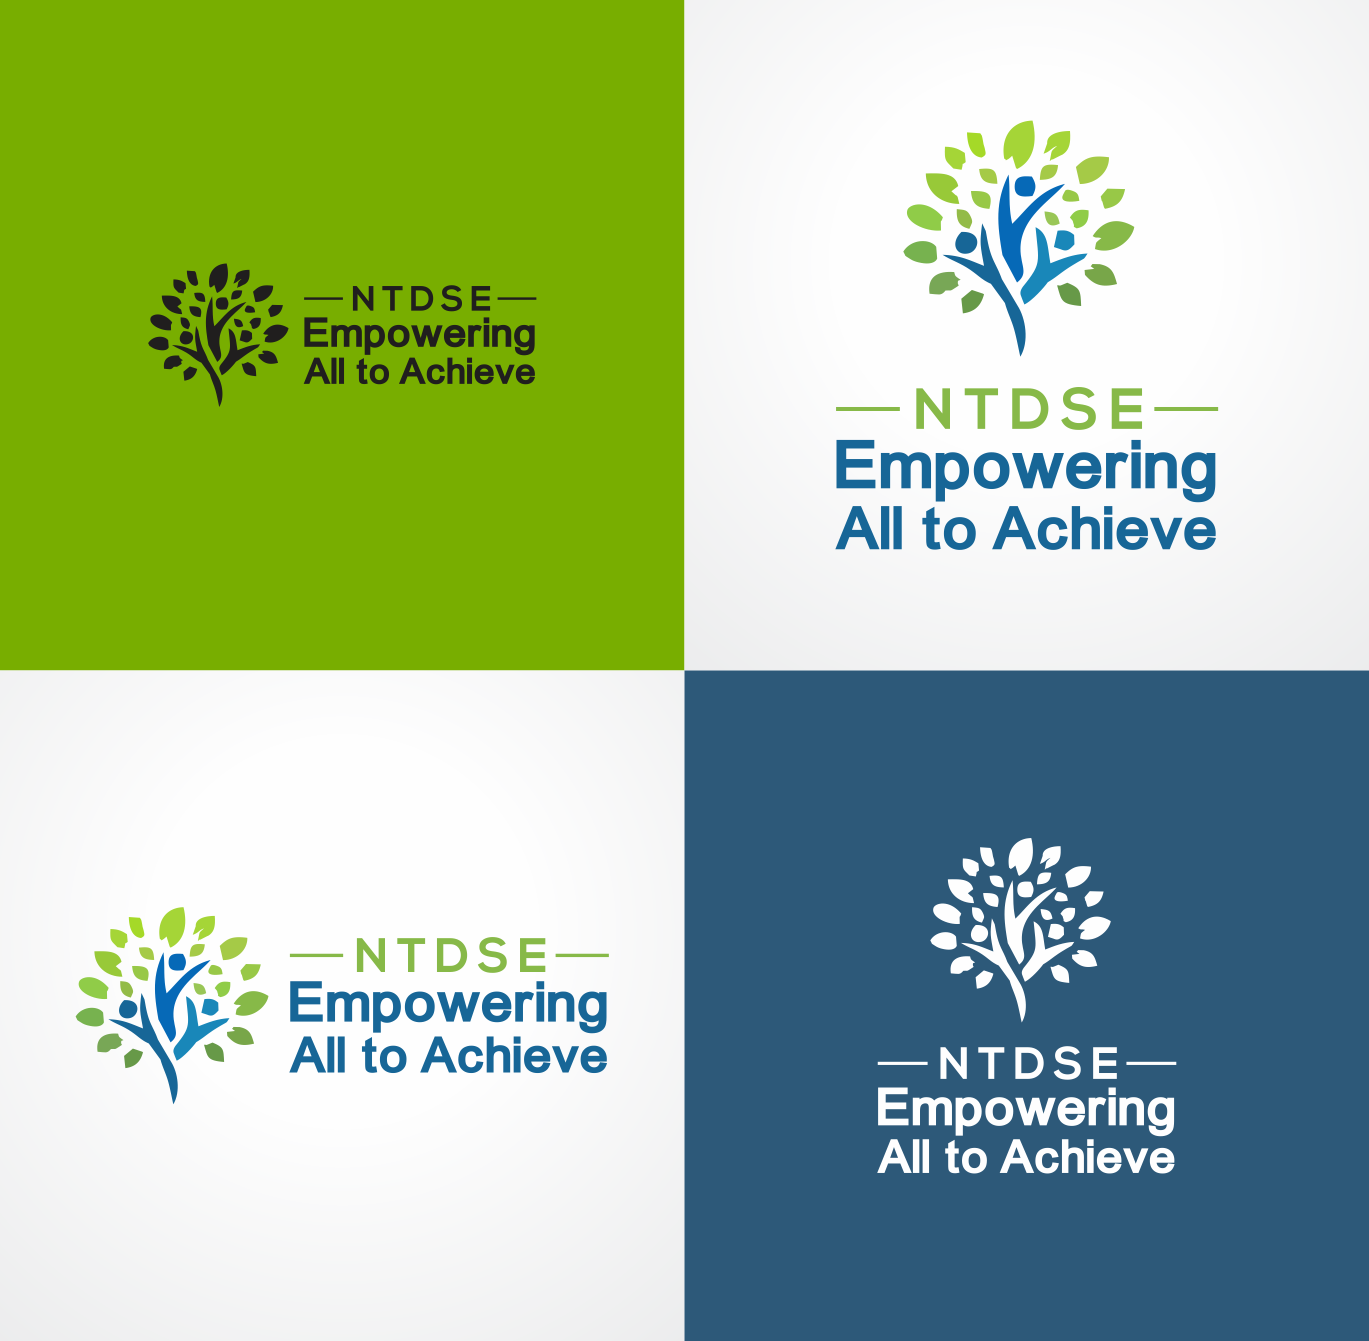 Empowering All To Achieve 41 Logo Designs For Ntdse Empowering All To Achieve Choose a free logo to make your own. designcrowd